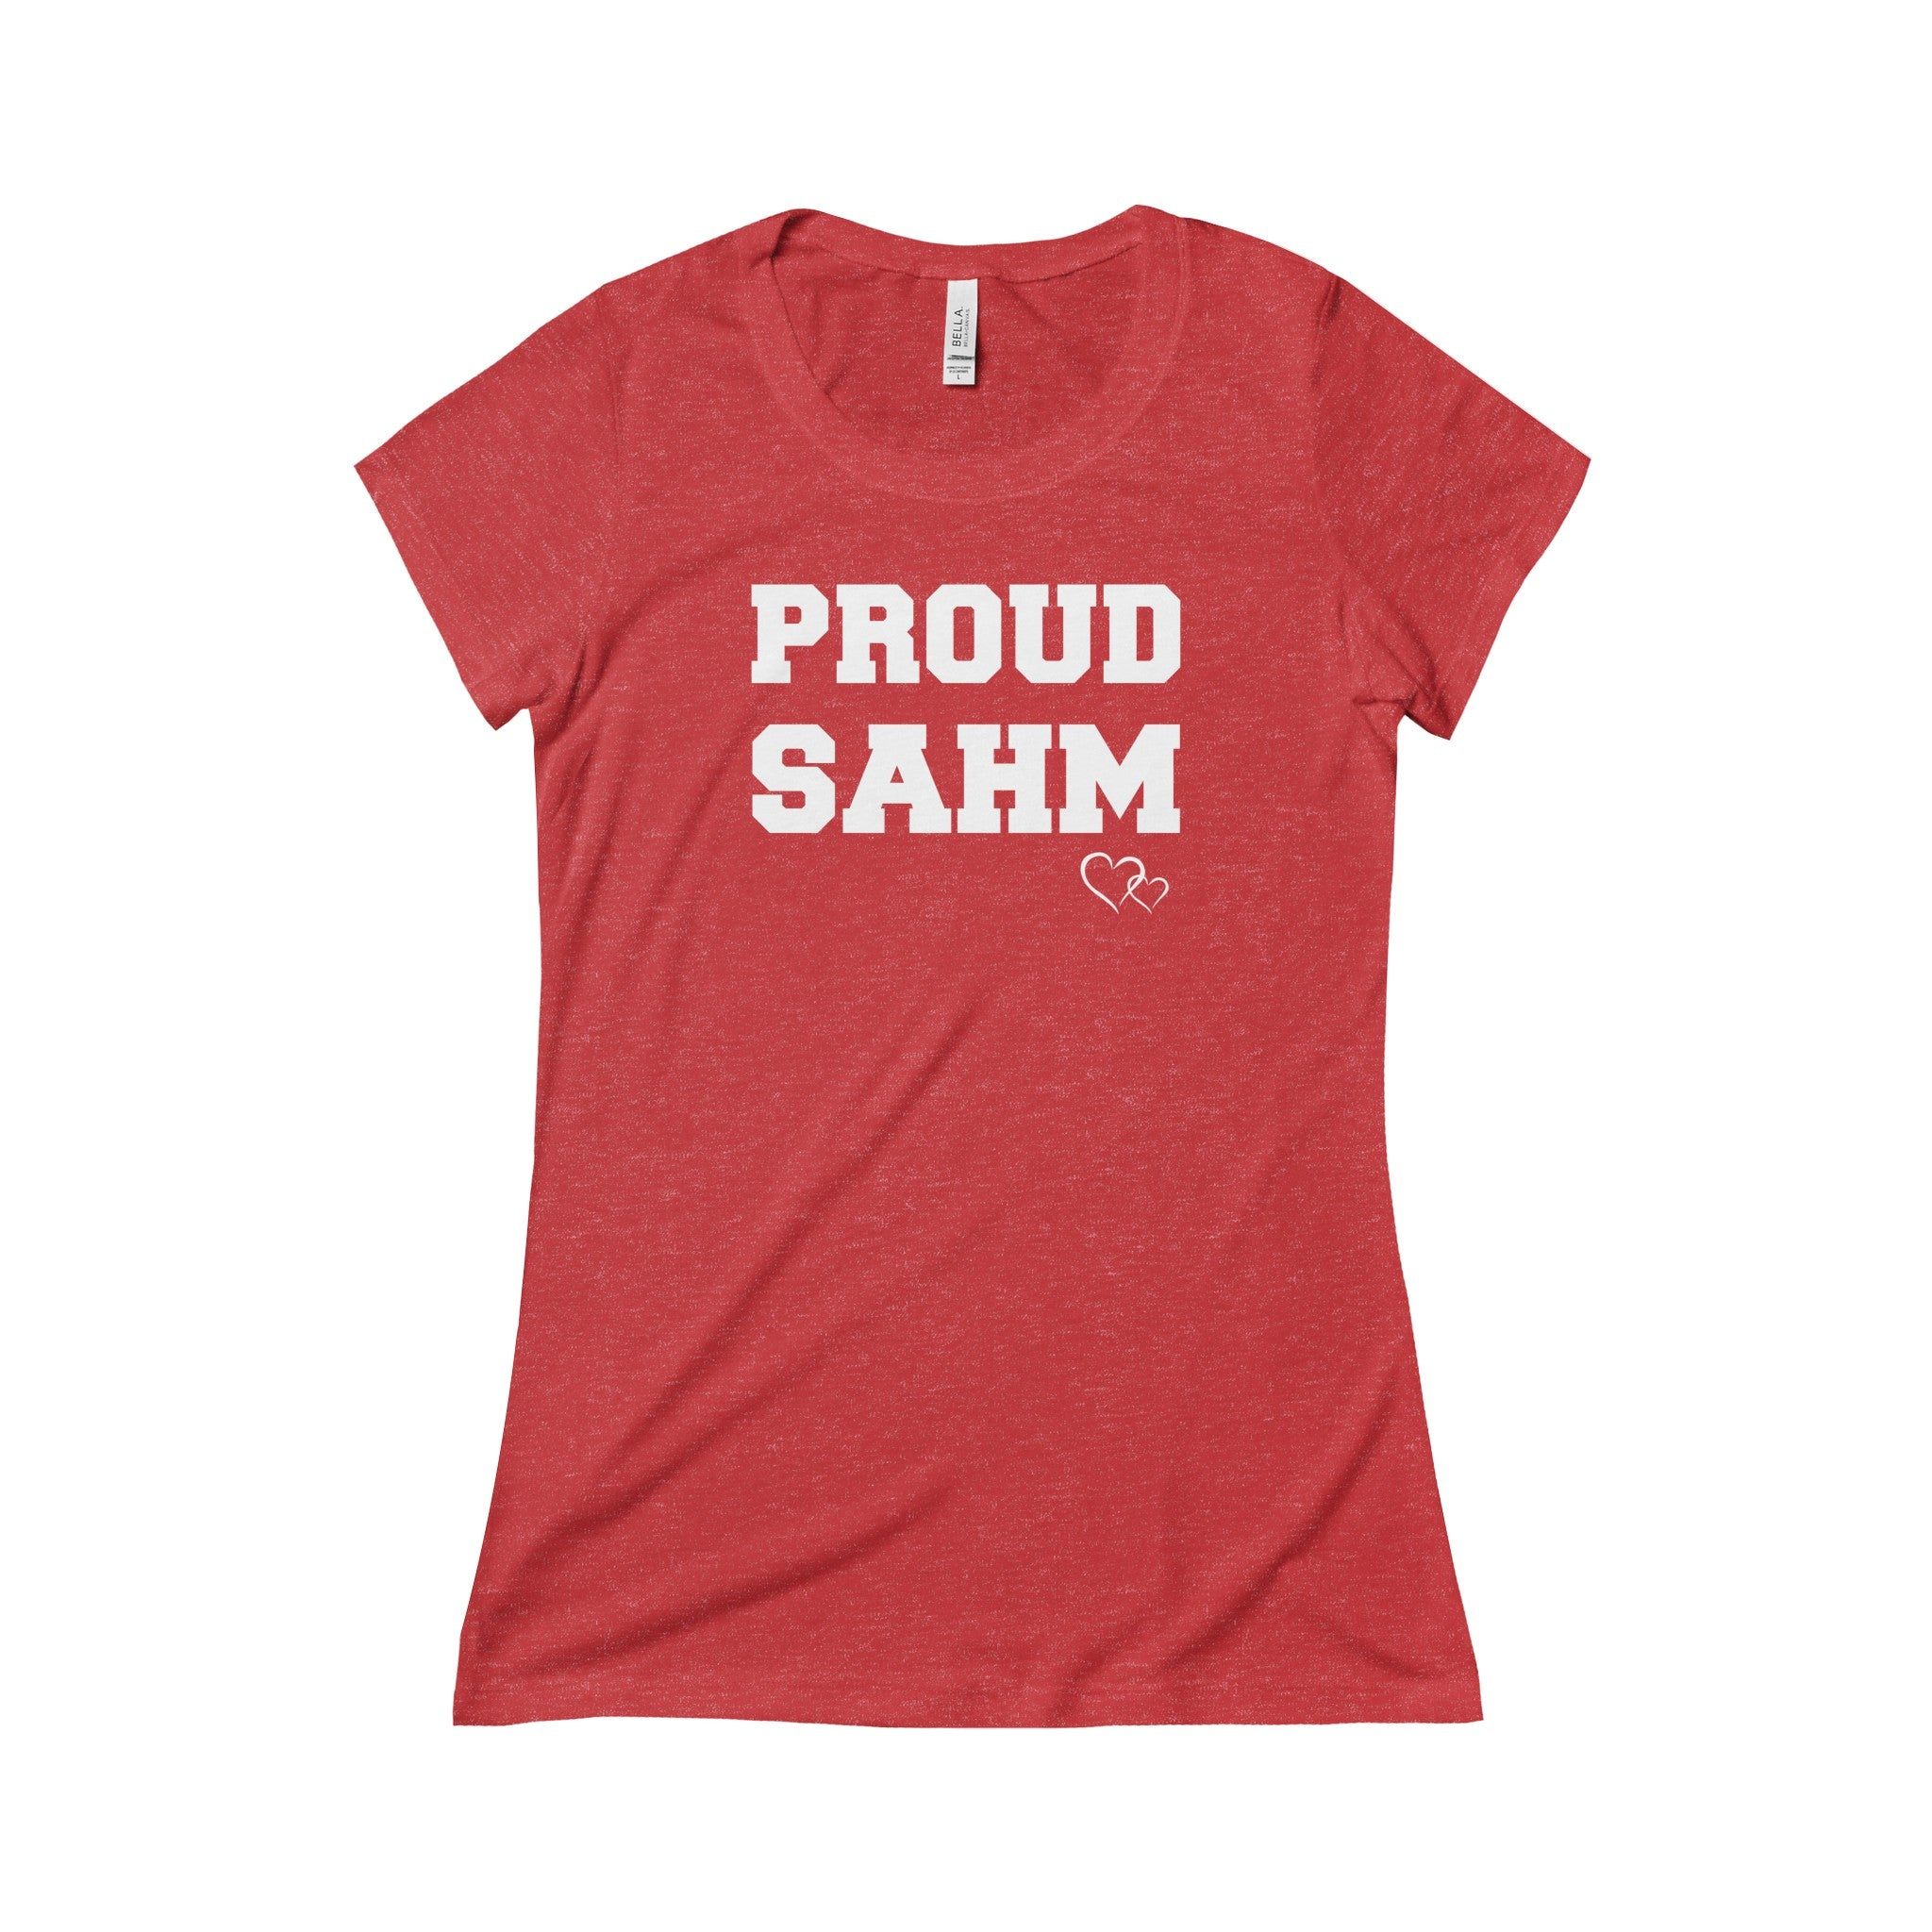 PROUD SAHM - Triblend Short Sleeve